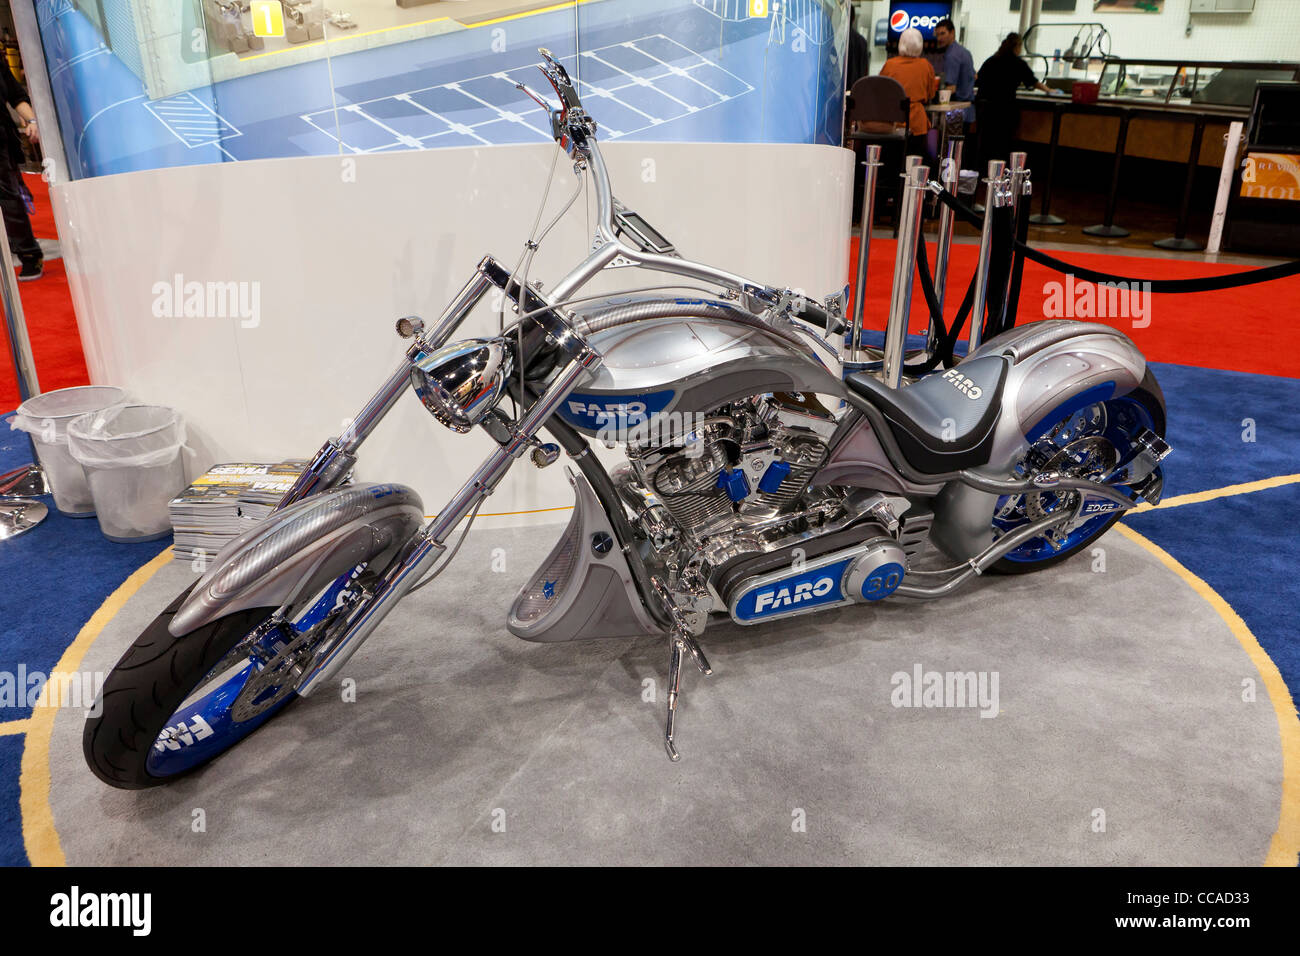 A chopper motorcycle - USA - Stock Image